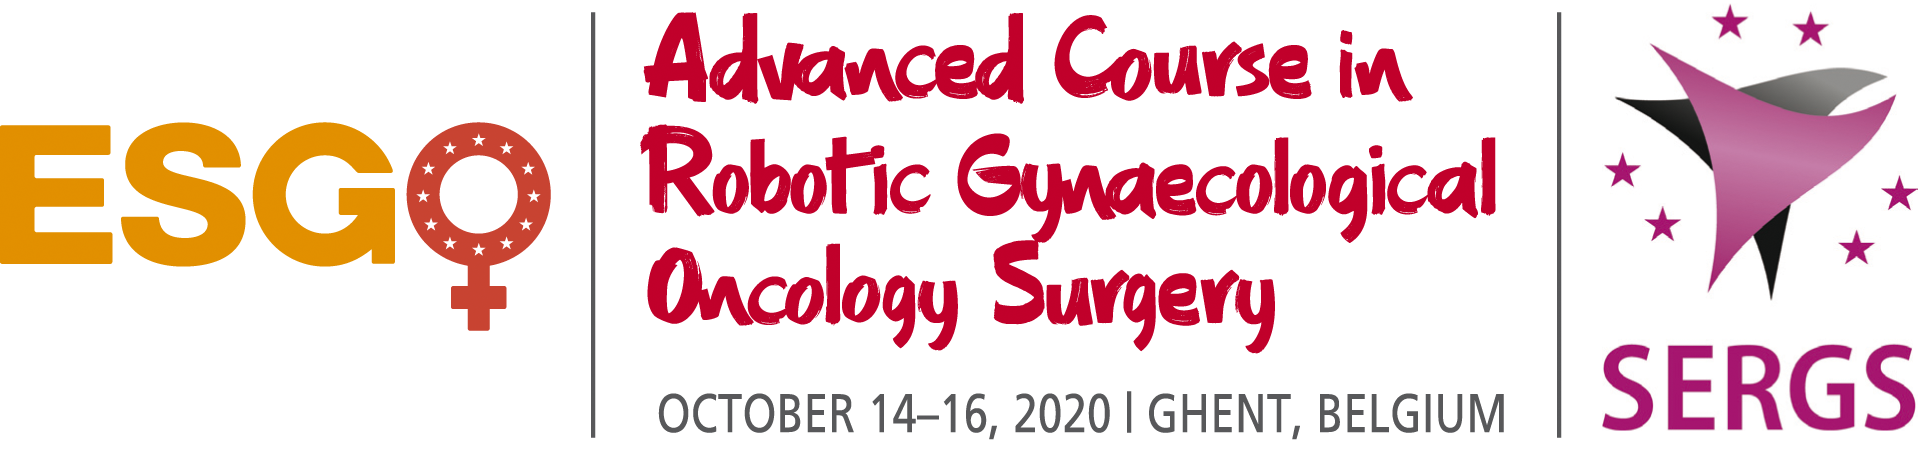 ESGO - SERGS Advanced Course in Robotic Gynaecological Oncology Surgery